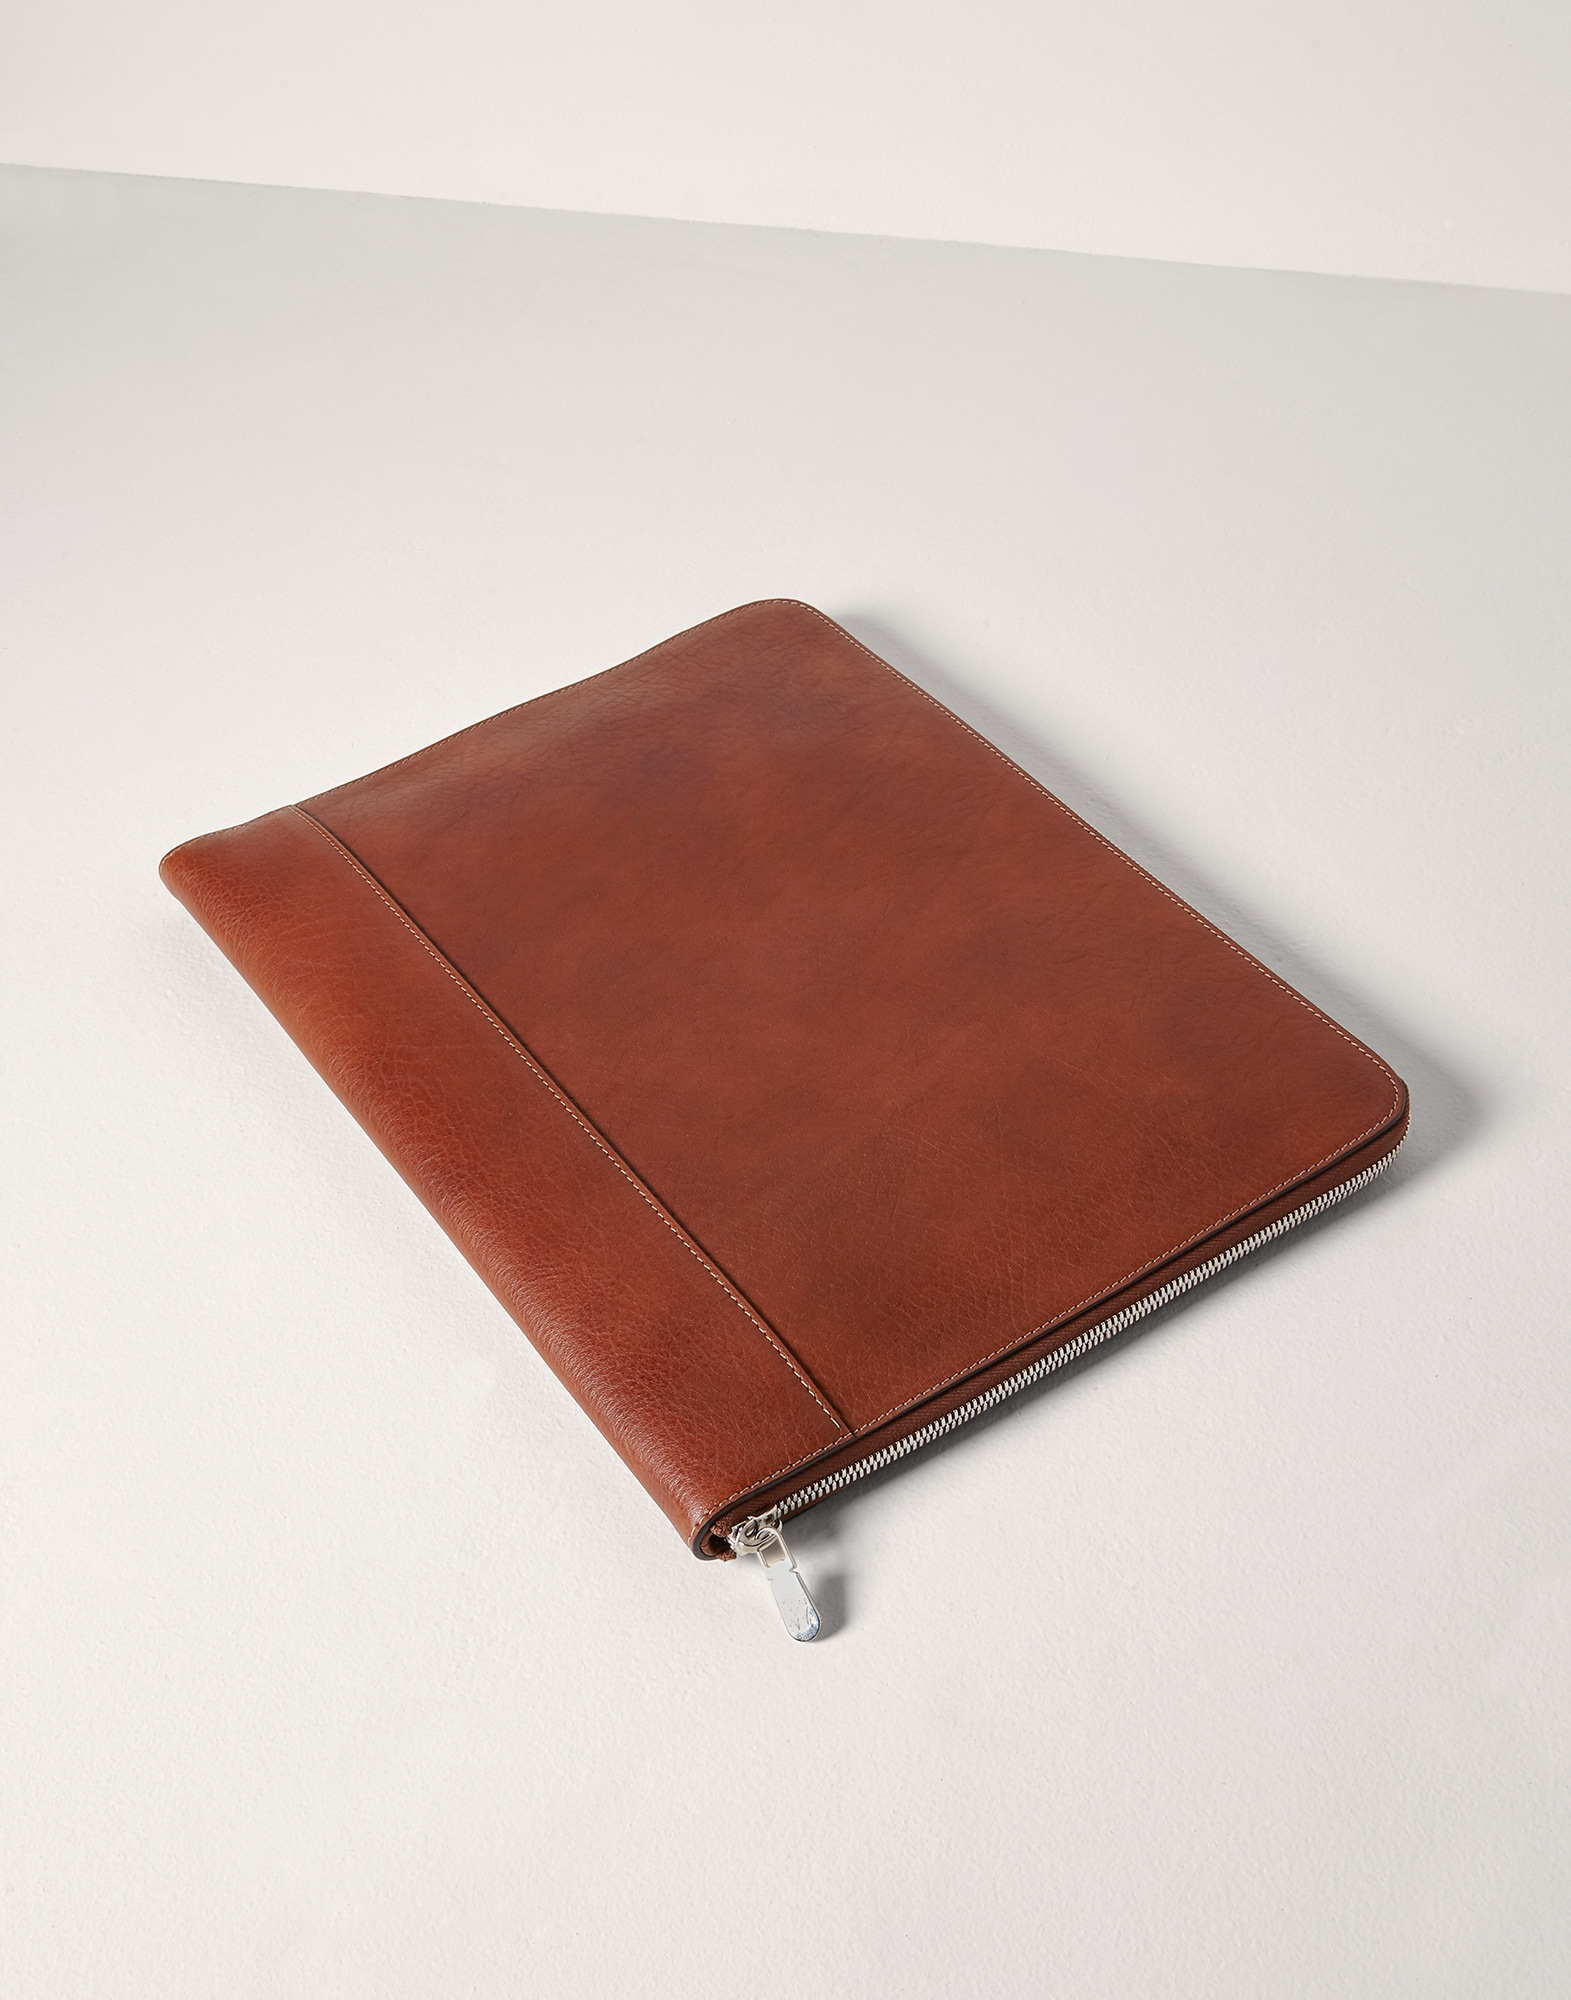 Document Holder - Back view